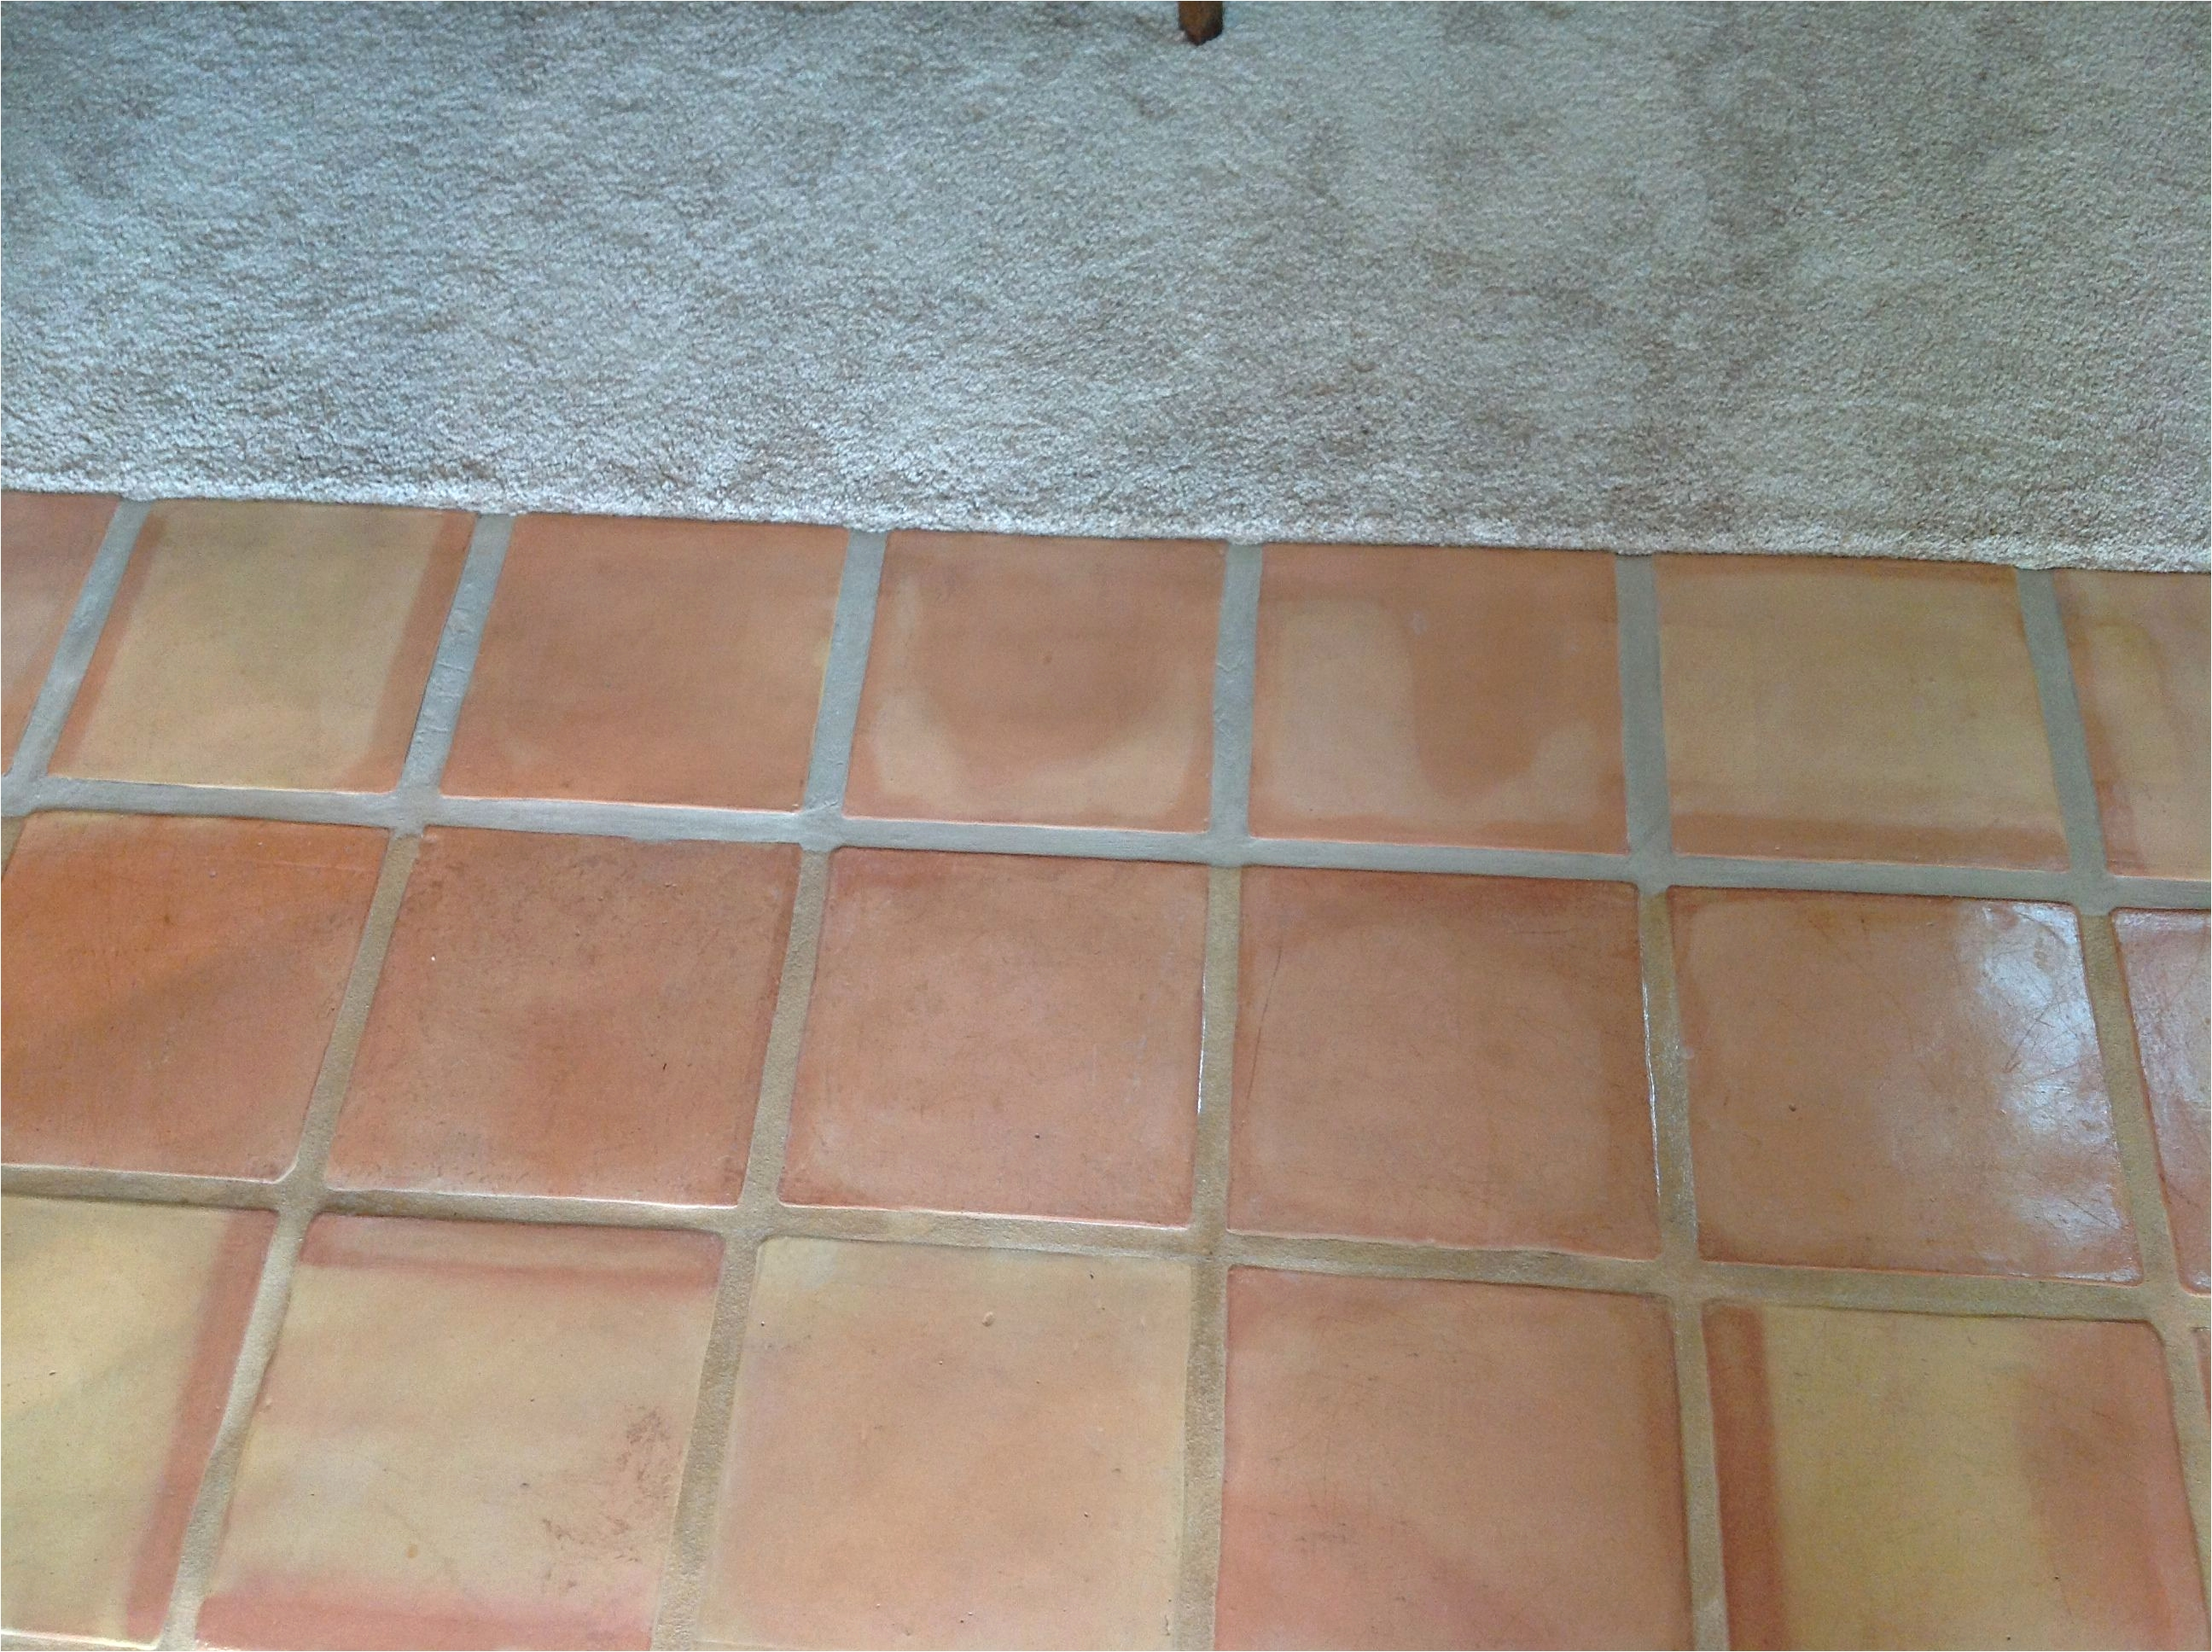 Best Wax for Tile Floors 50 Fresh How to Wax A Tile Floor Pictures 50 Photos Home Improvement